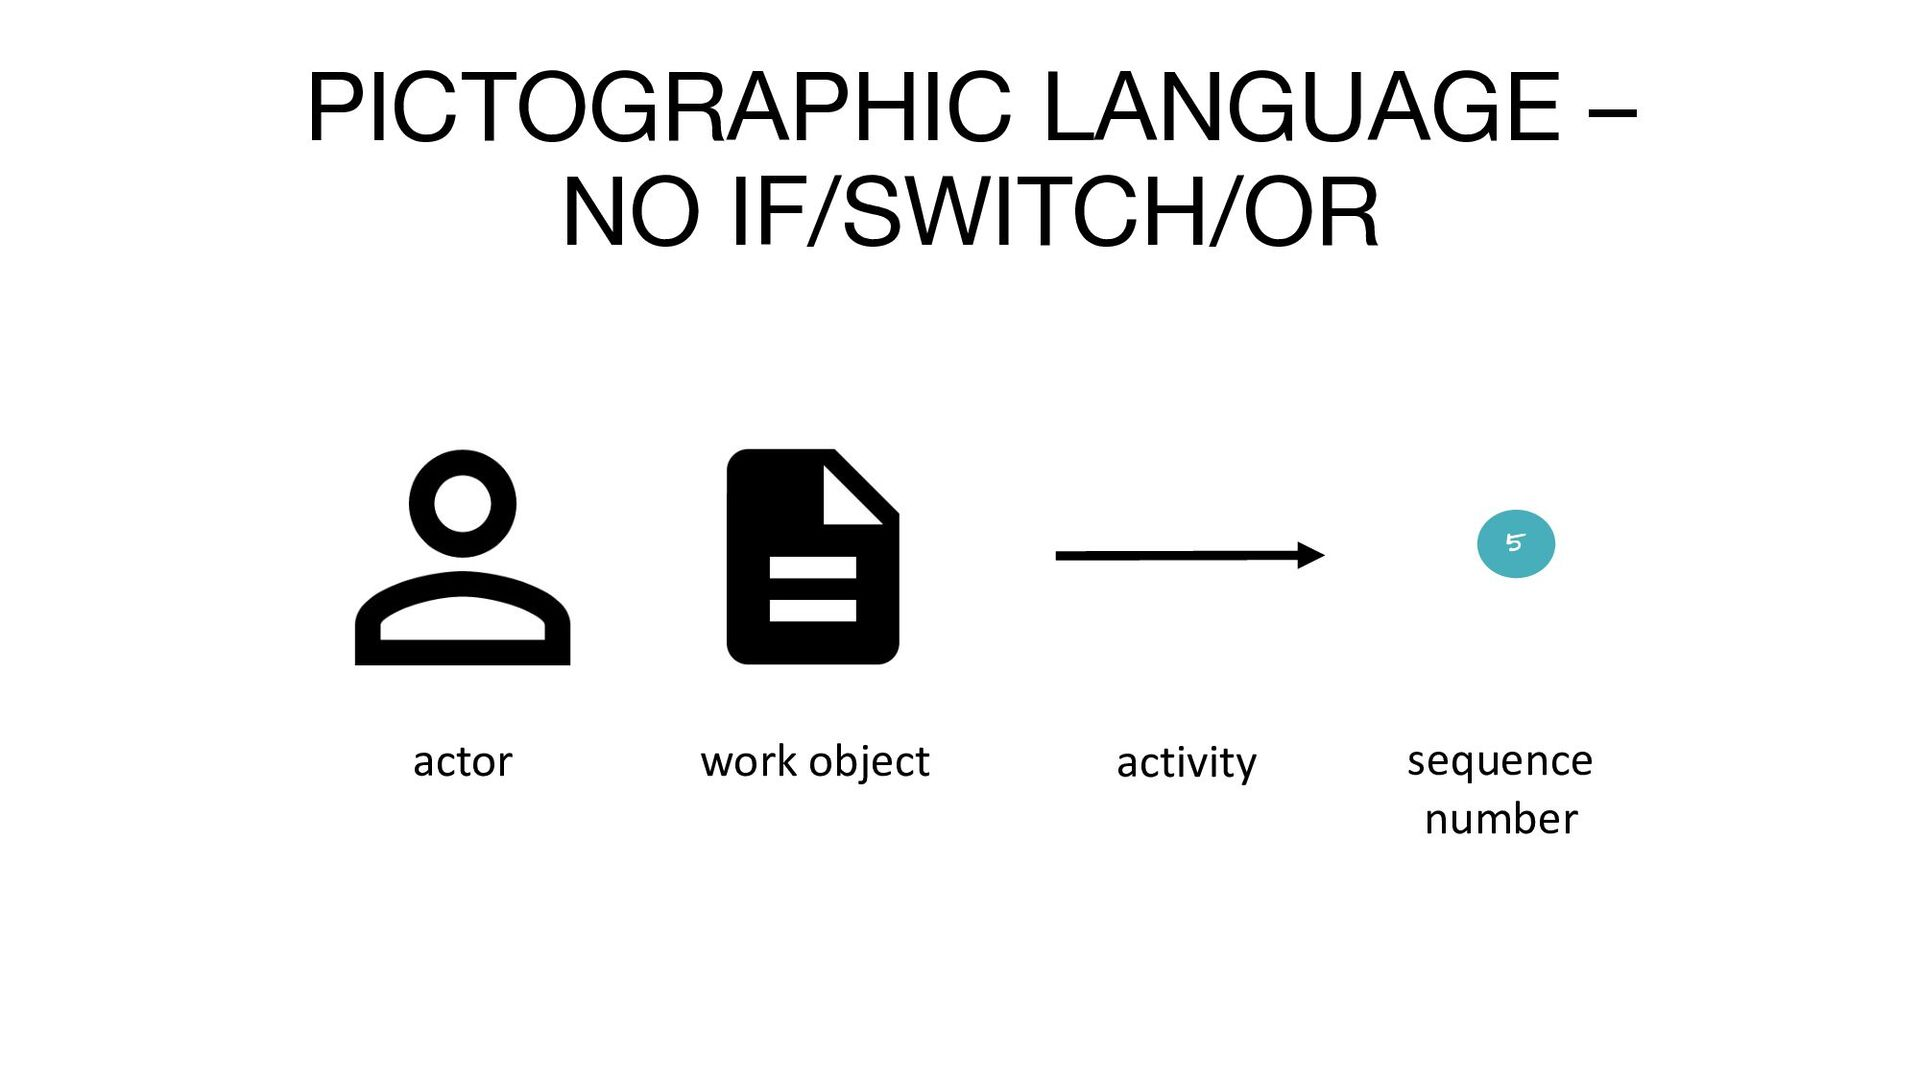 @hschwentner Travel to this conference by train